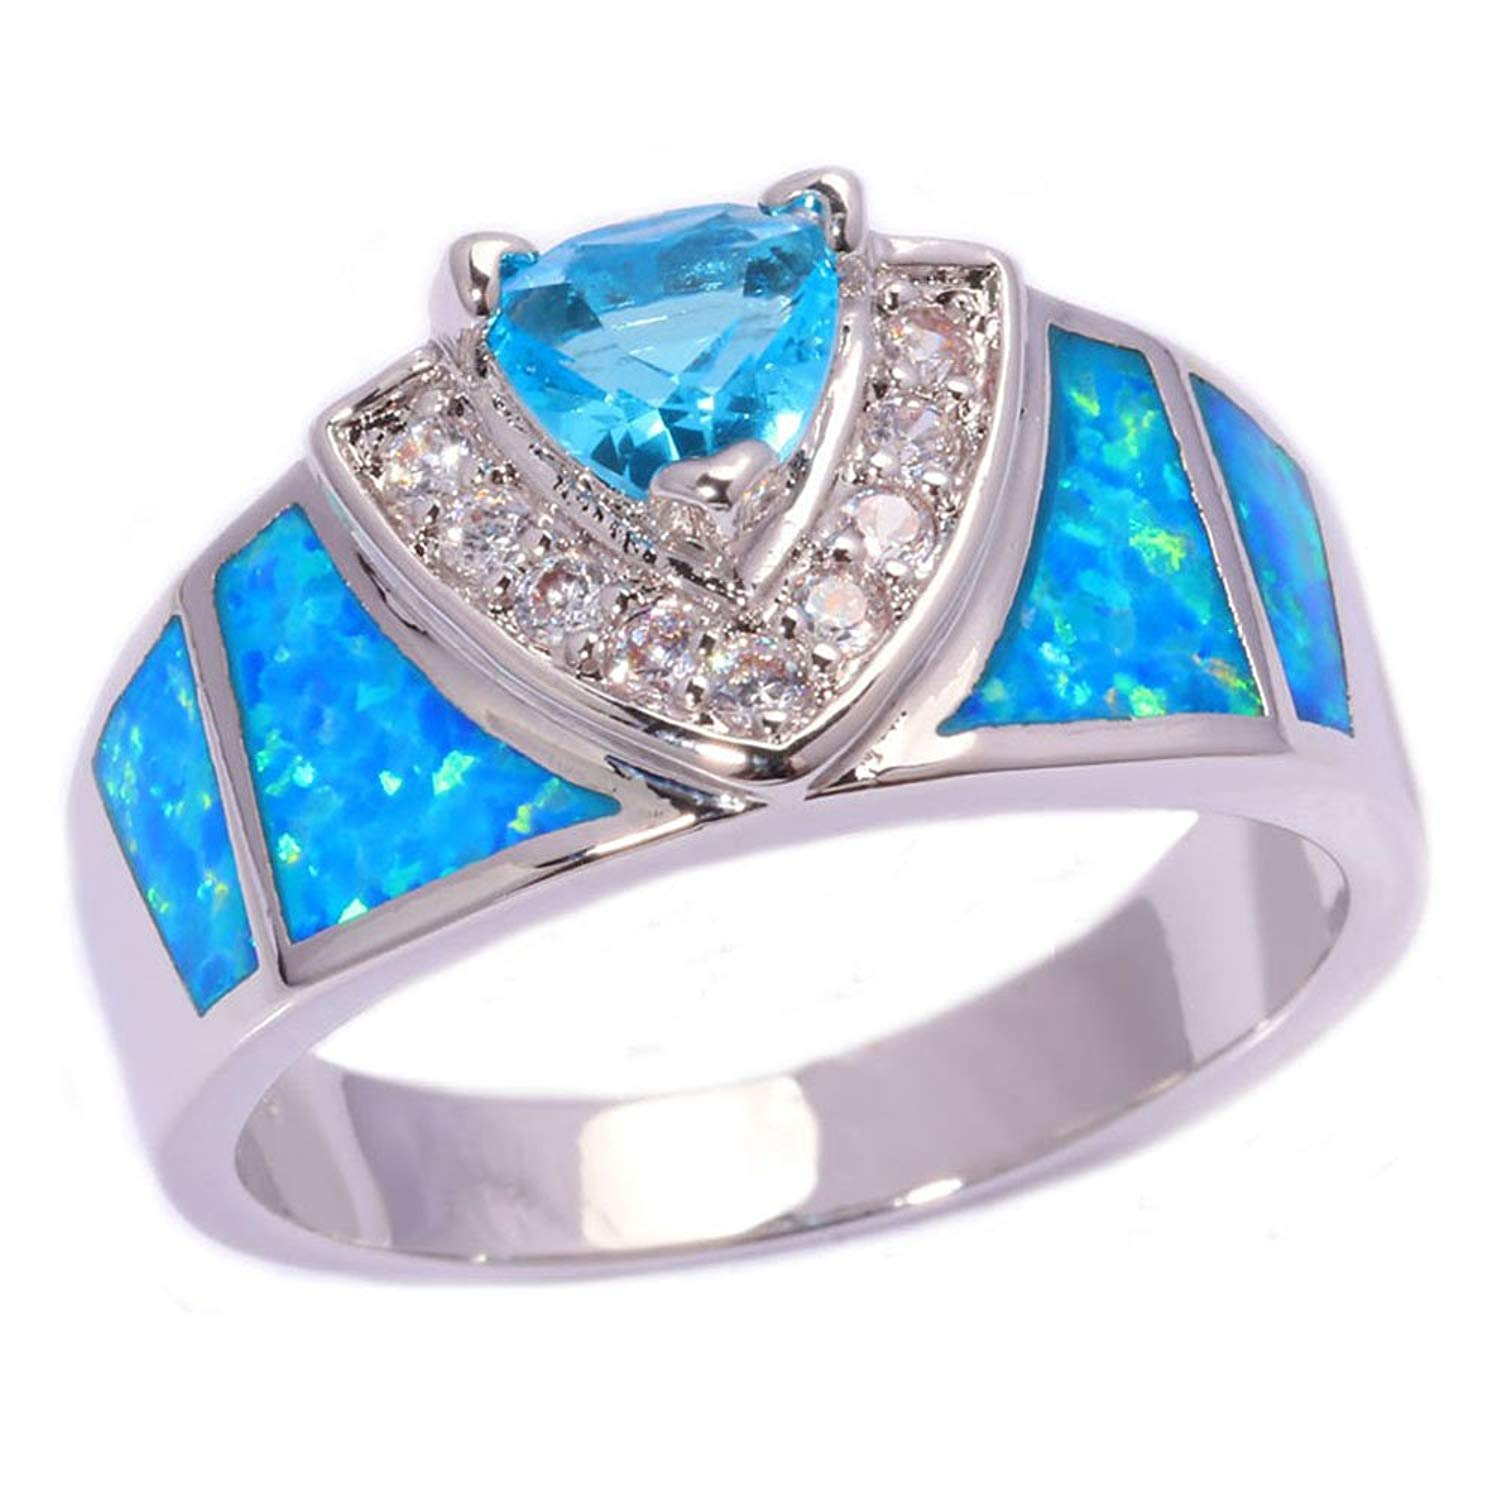 Get Quotations · Rny Jewelry Blue Fire Opal Topaz Wedding Ring For Women Engagement Bridal Rings: Cheap Blue Wedding Rings At Reisefeber.org